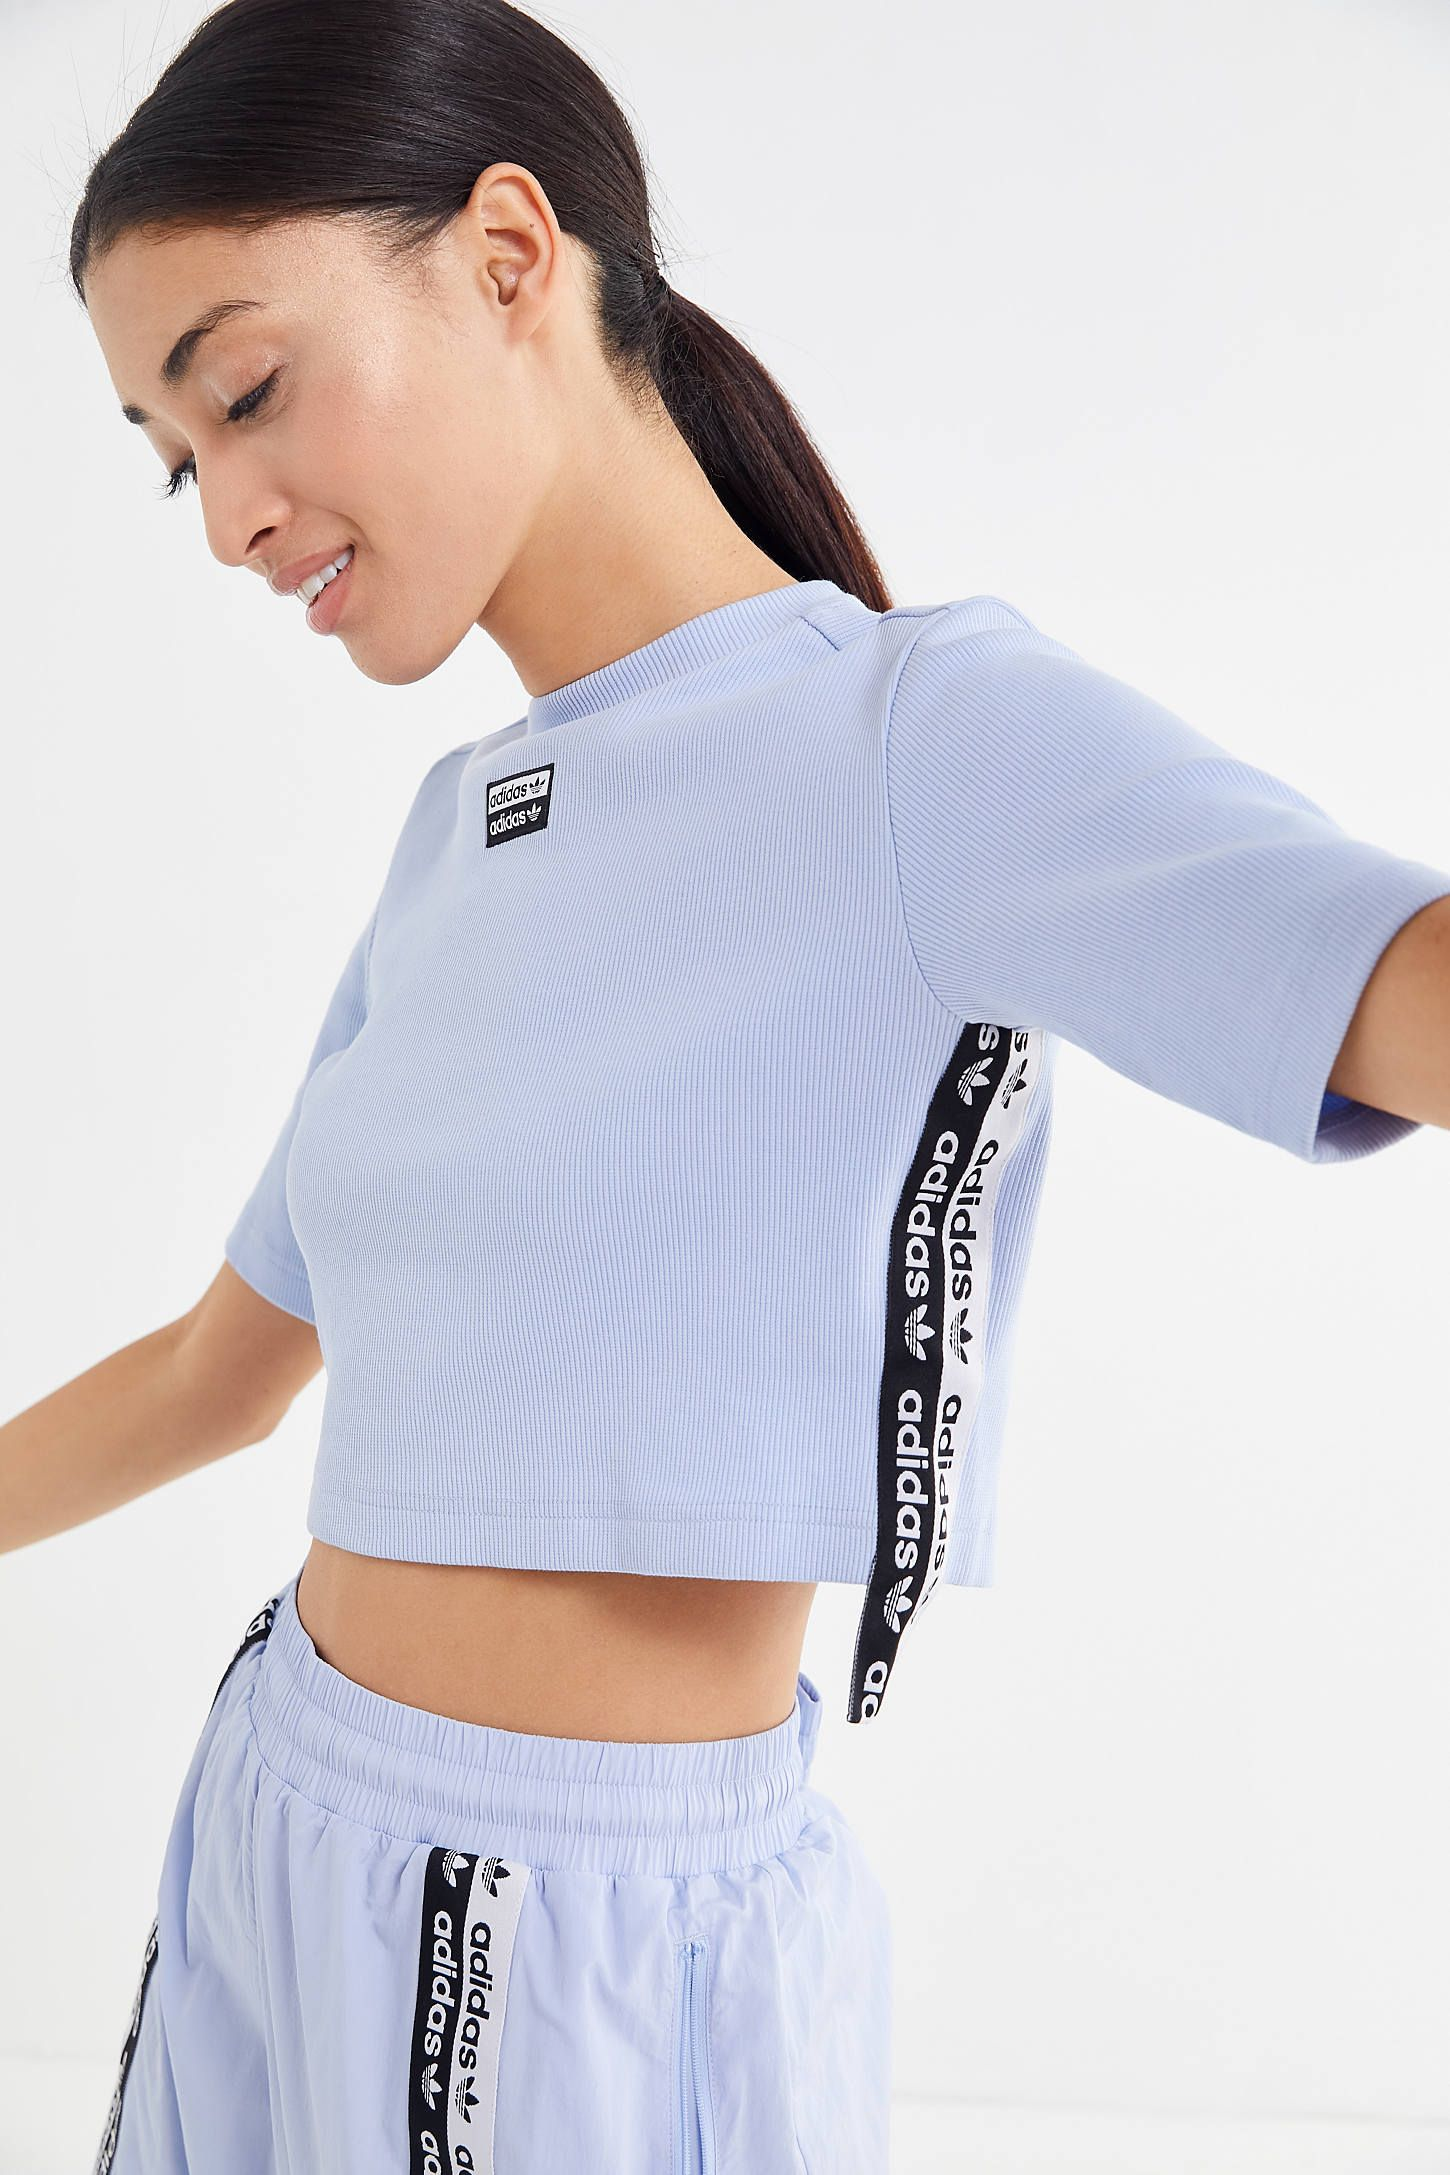 adidas Originals RYV taping cropped t shirt in periwinkle